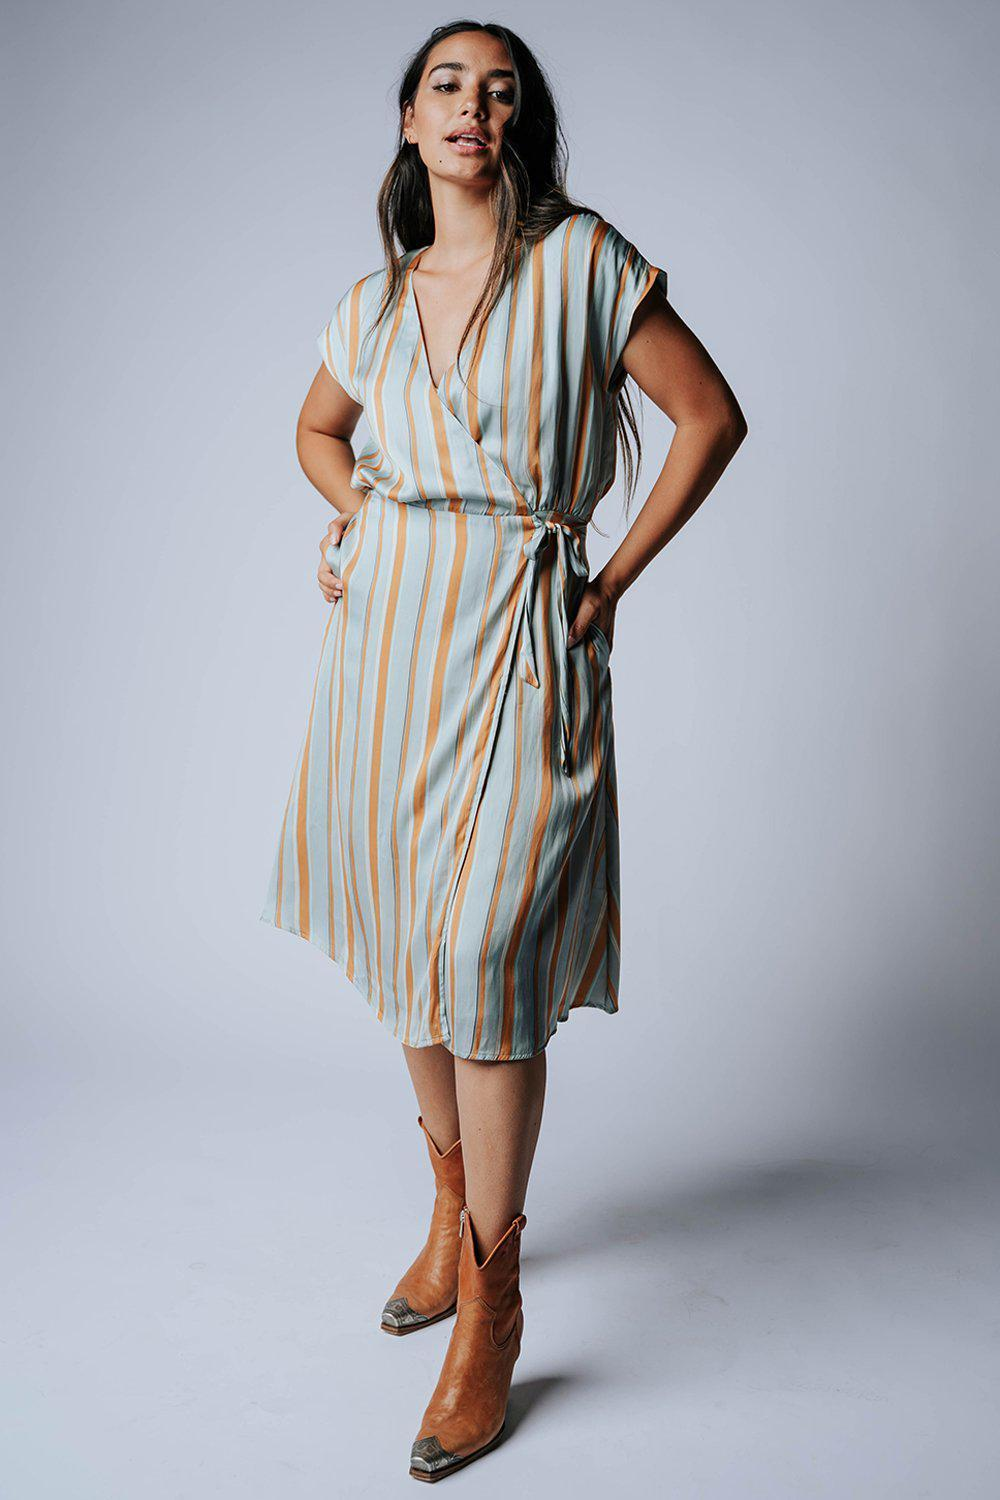 best_seller, Into the Sun Striped Dress in Aqua - FINAL SALE, Dress, women's clothing, dresses, skirts, coats, jackets, shoes, boots, tops, tee shirts, jeans, free people, levi's, rollas, jumpsuits, bottoms, tops, sweaters, pullovers, pants, shorts, sweats,.